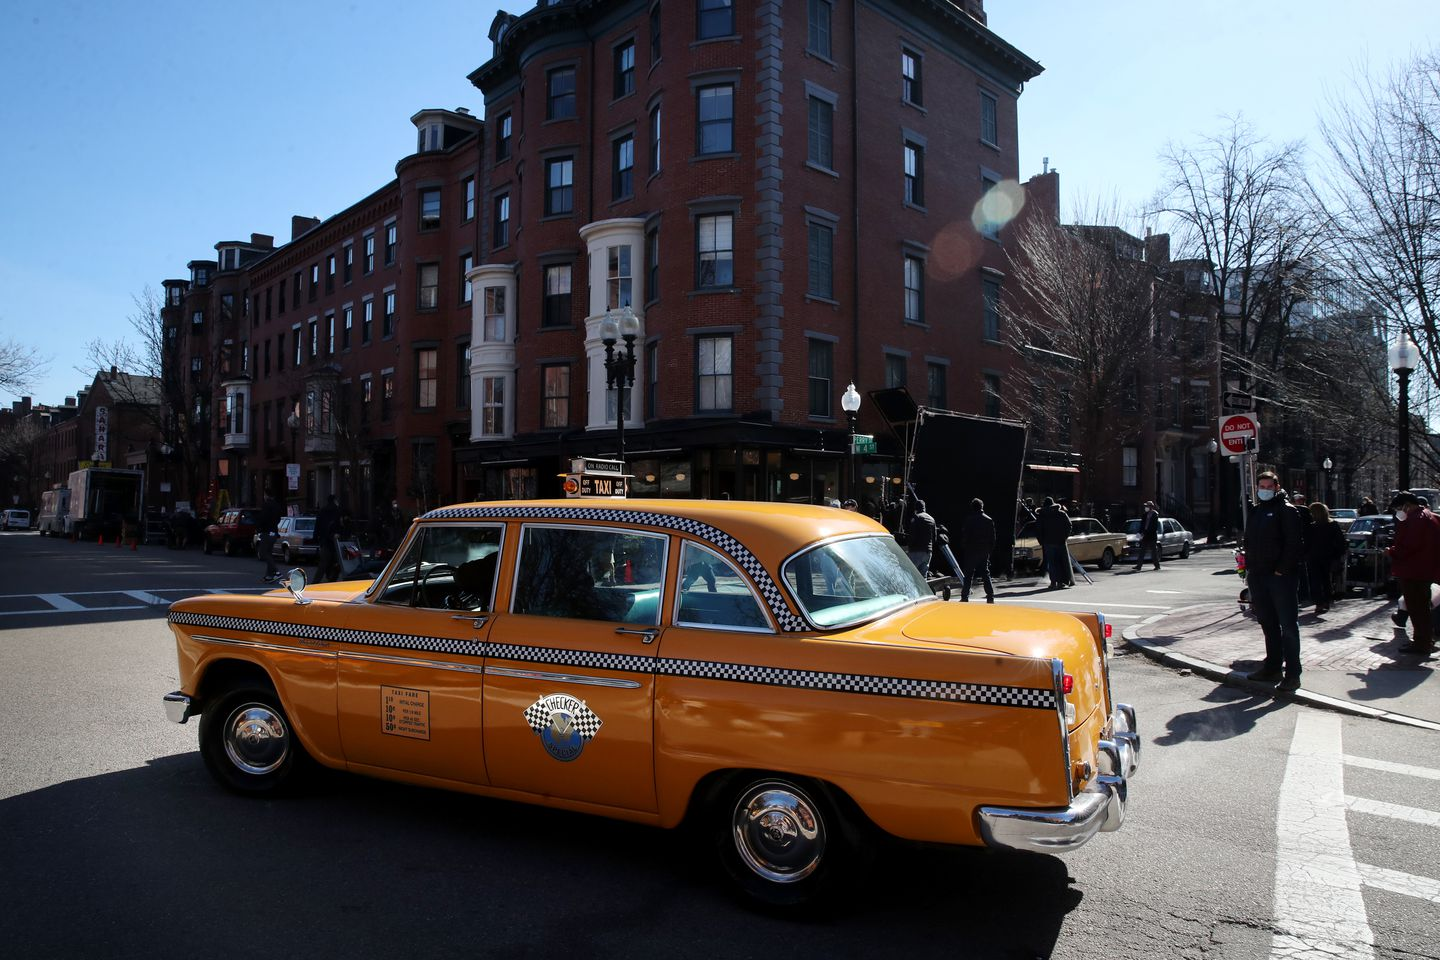 George Clooney and Ben Affleck Spotted filming in the South End this morning P6QXAX5HEATBJED2Z2PFU47QGQ